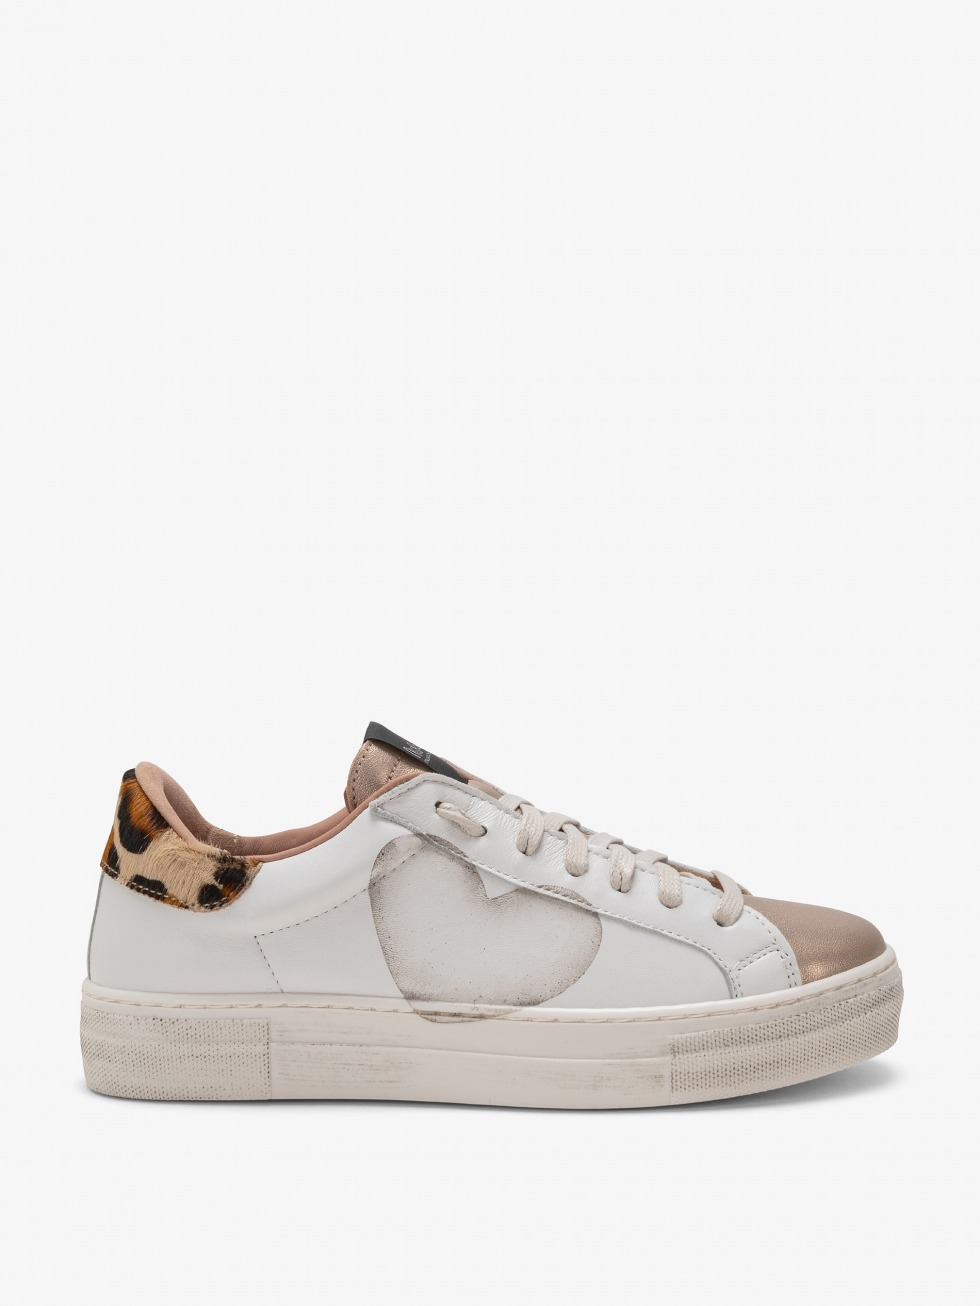 Martini Africa Gold Sneakers - Heart